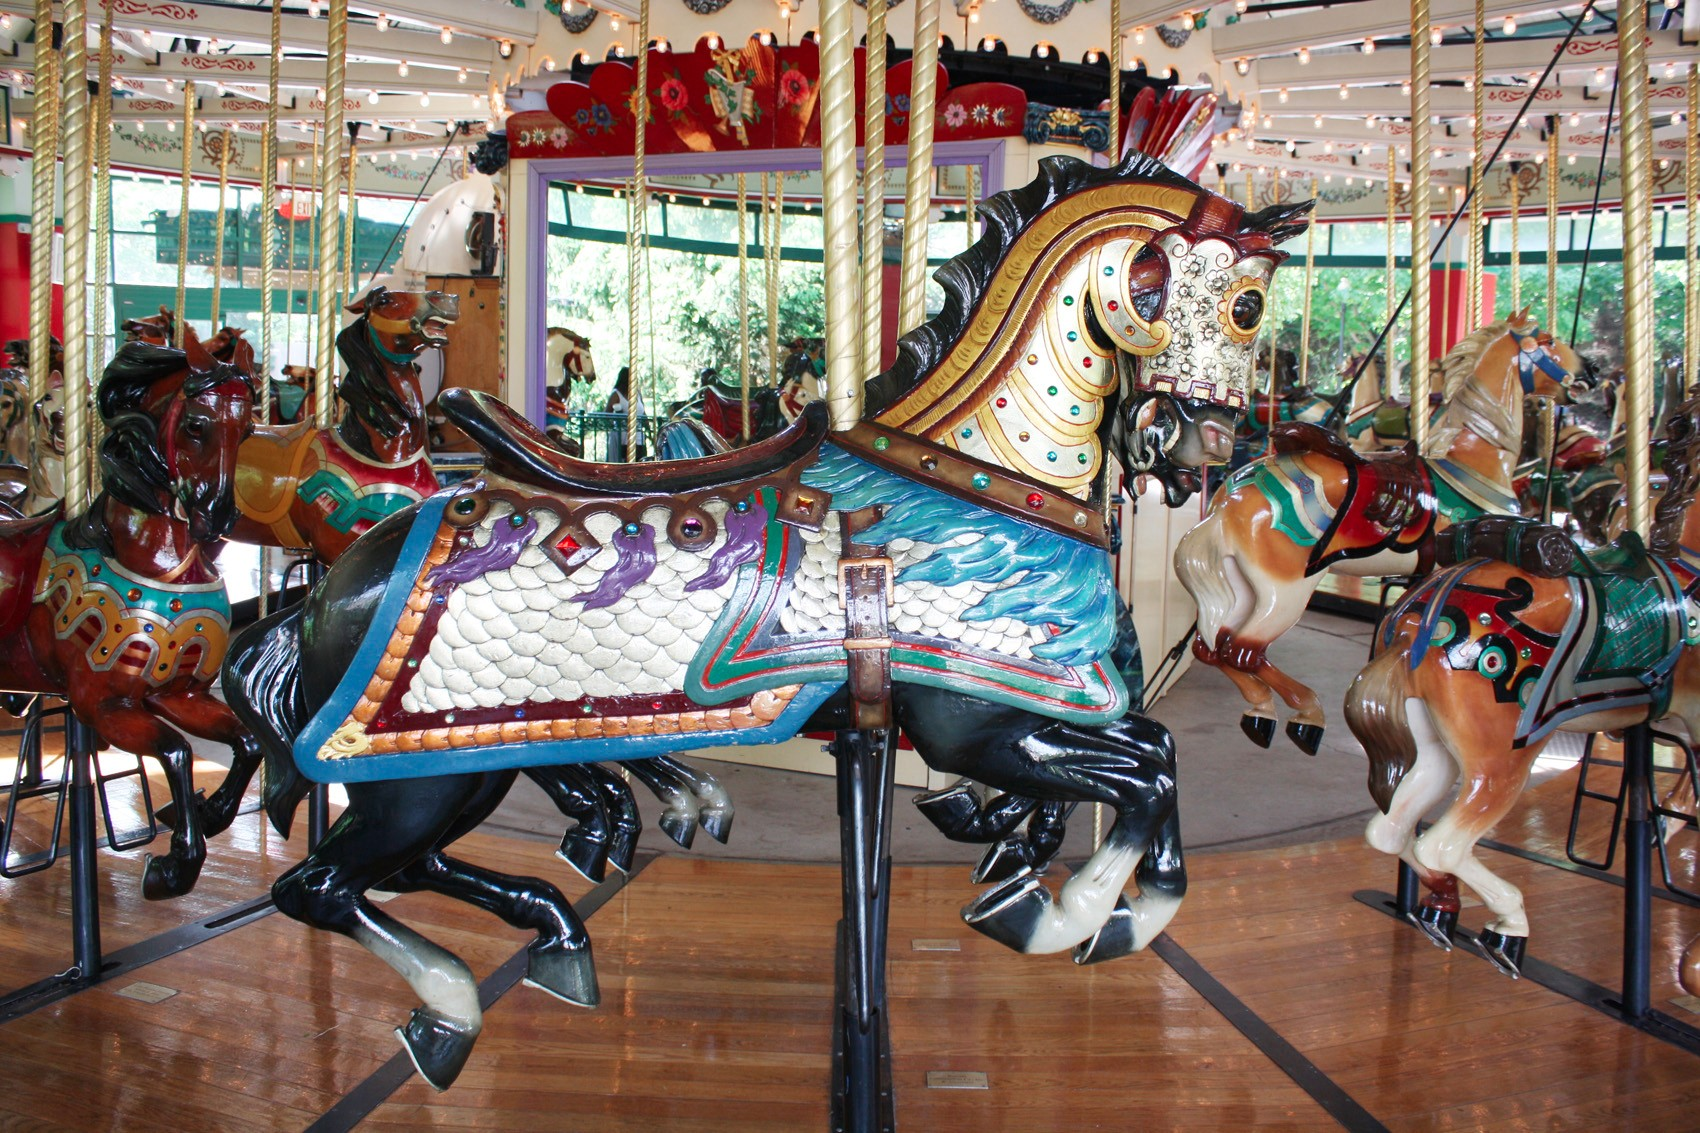 1914-Mangels-Illions-carousel-Columbus-Zoo-armored-horse-2